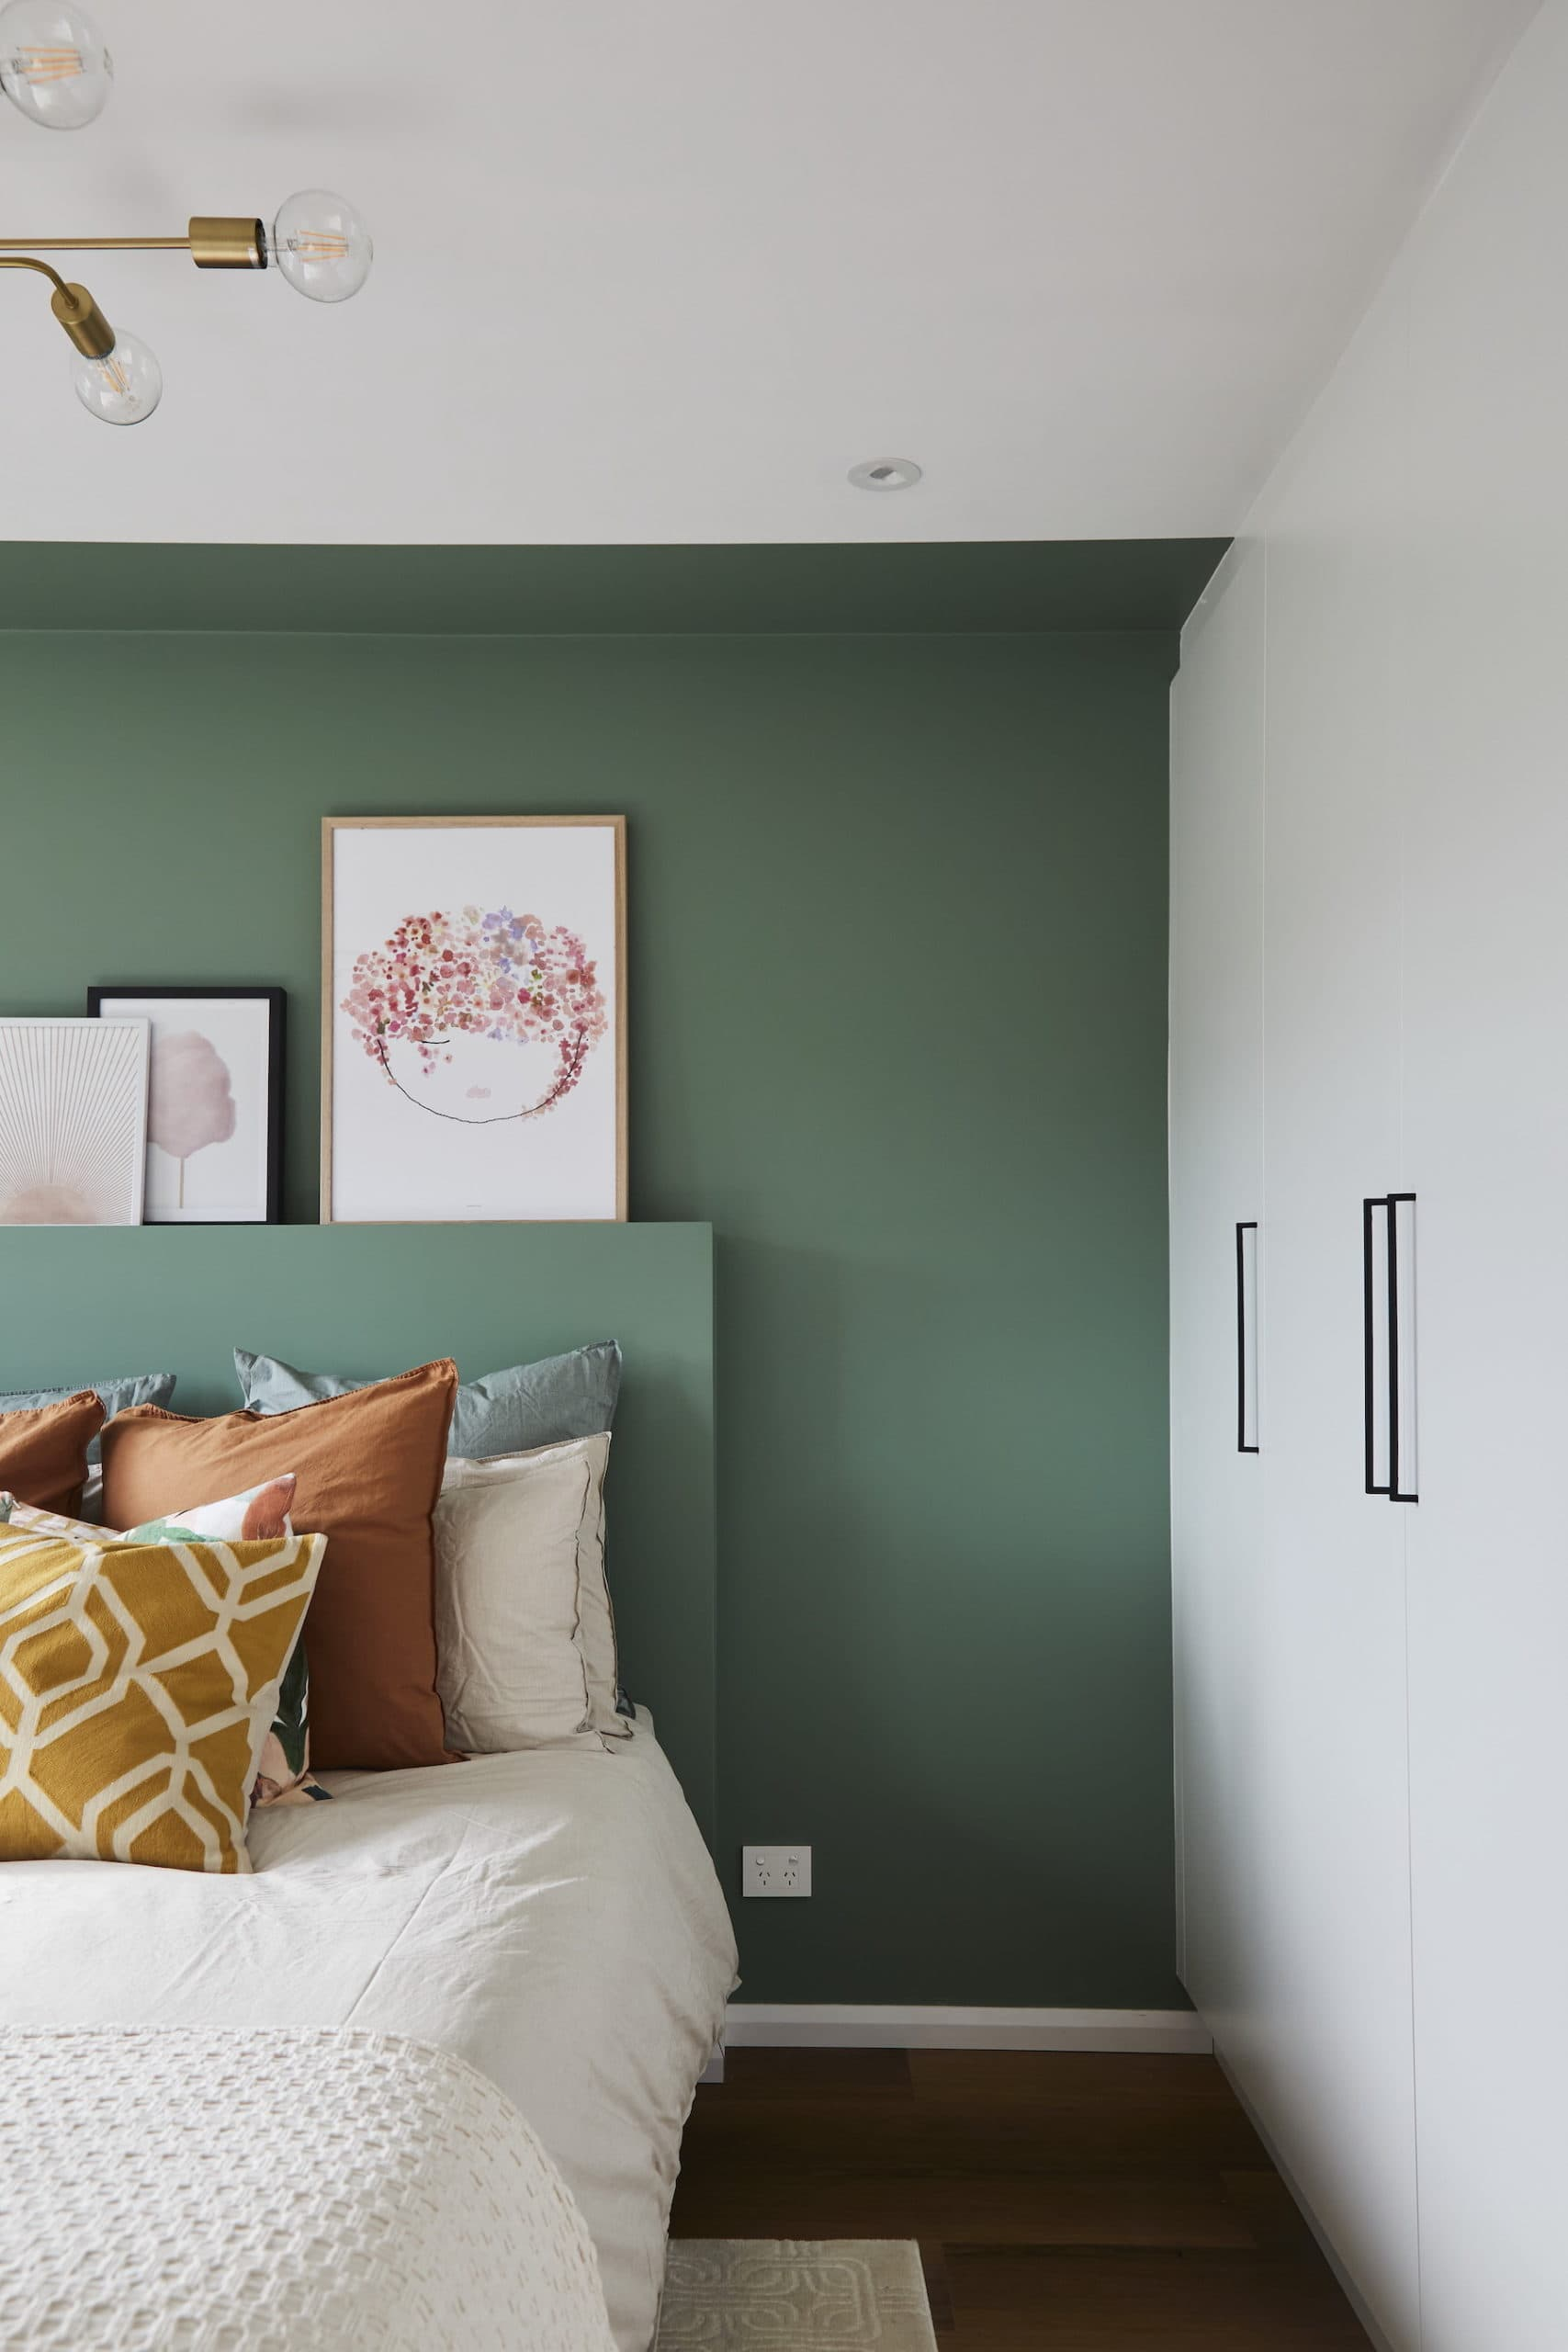 house rules 2020 kimmy and rhi green bedroom wall ideas white bedding